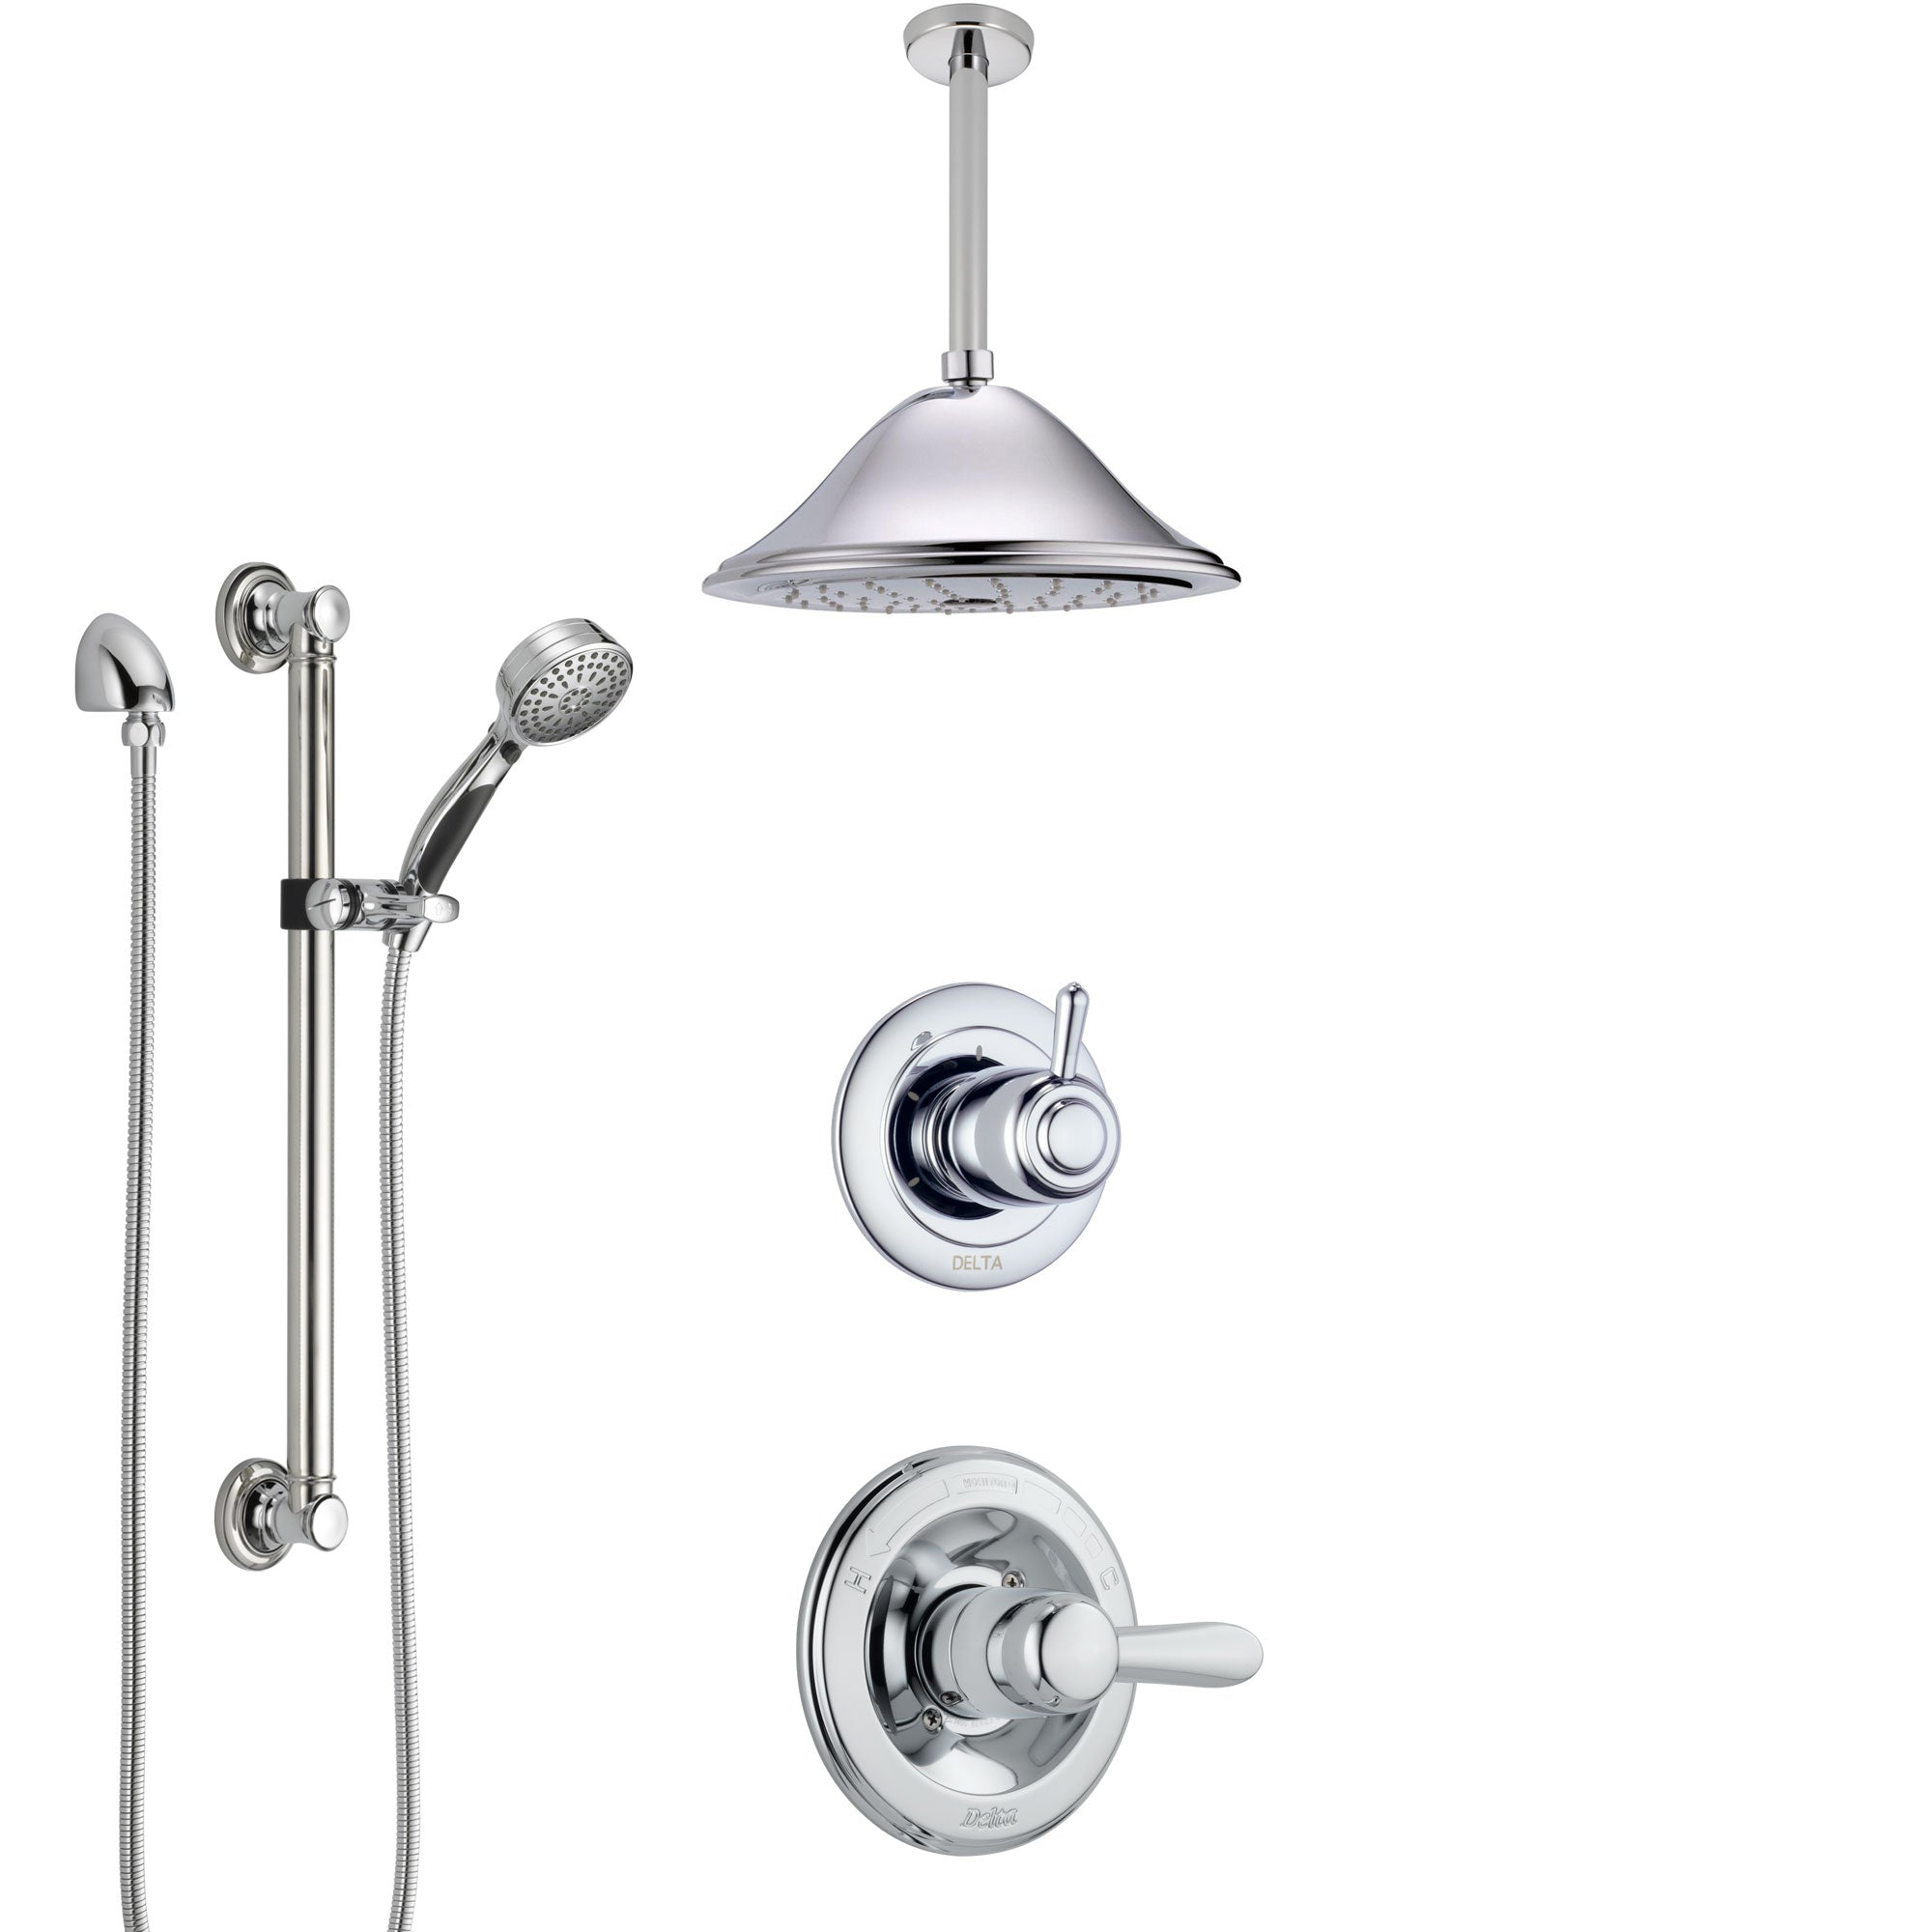 Delta Lahara Chrome Finish Shower System with Control Handle, 3-Setting Diverter, Ceiling Mount Showerhead, and Hand Shower with Grab Bar SS14384